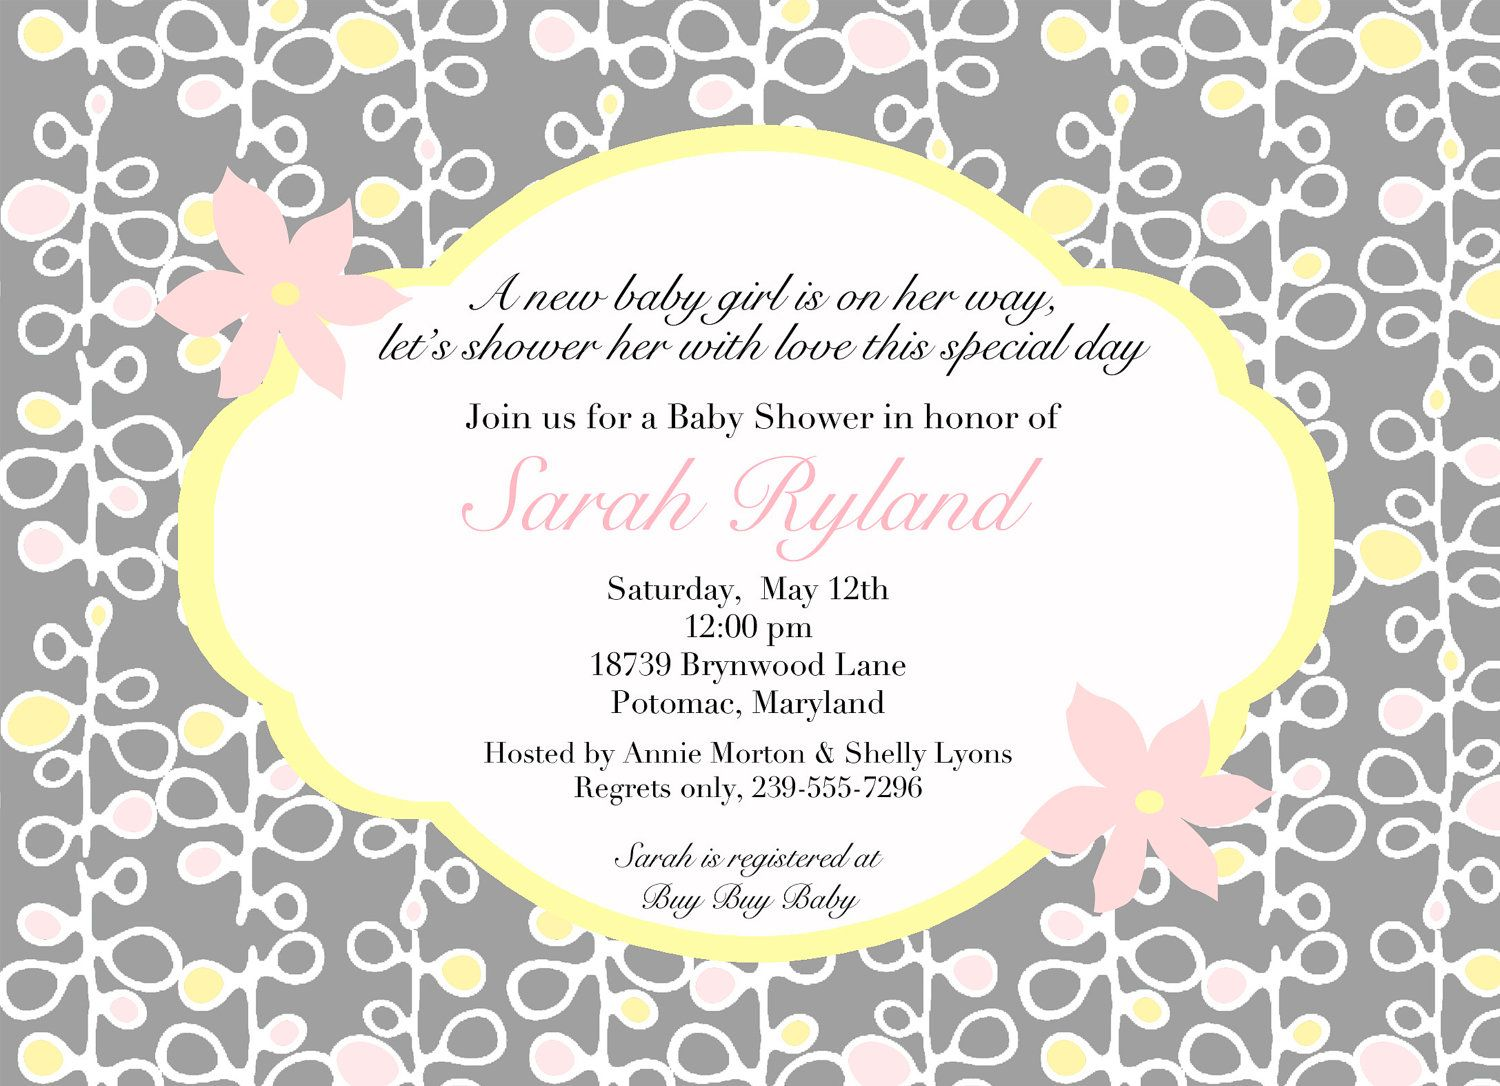 Coed Baby Shower Invitation Wording Pink and Yellowa Baby Shower